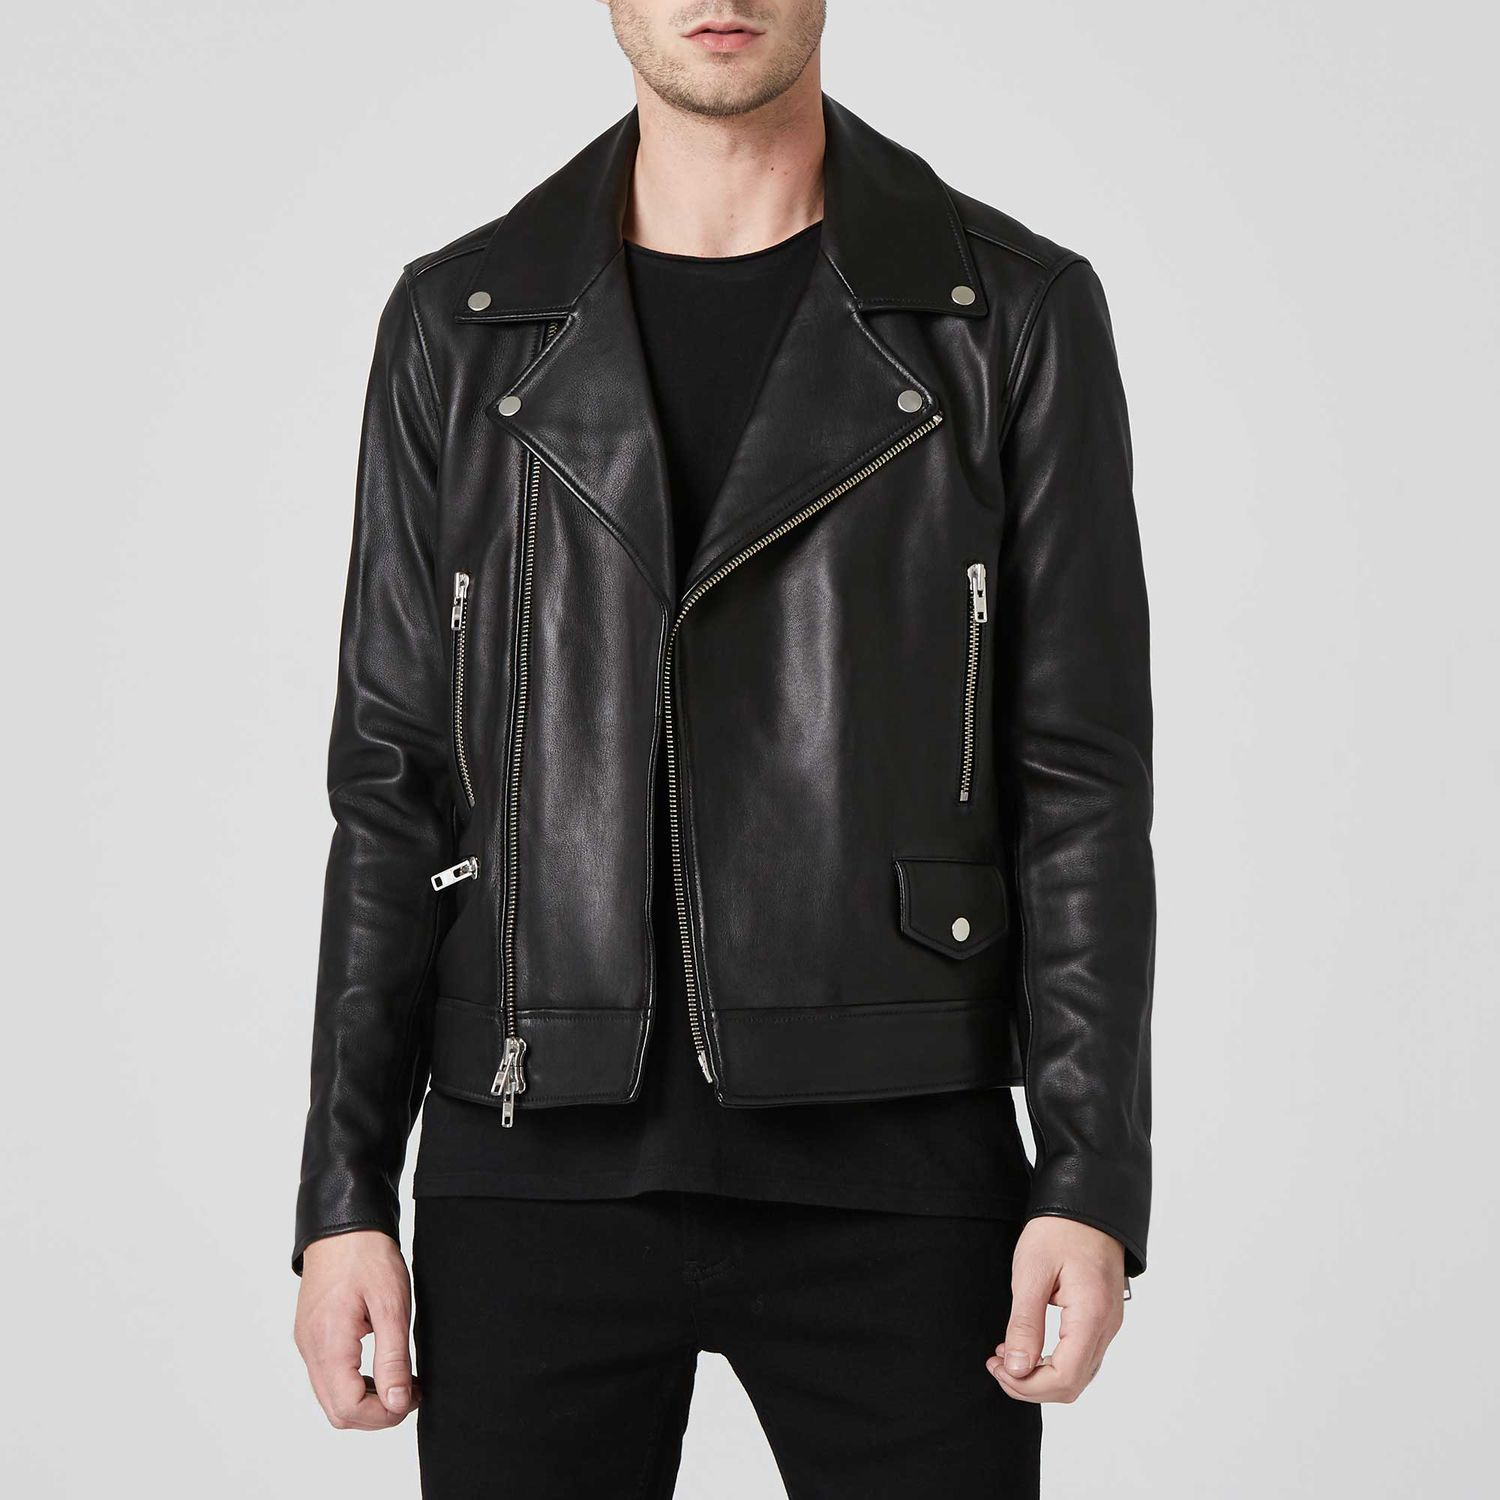 [Collection] Mens Leather Moto Jacket in Black Black